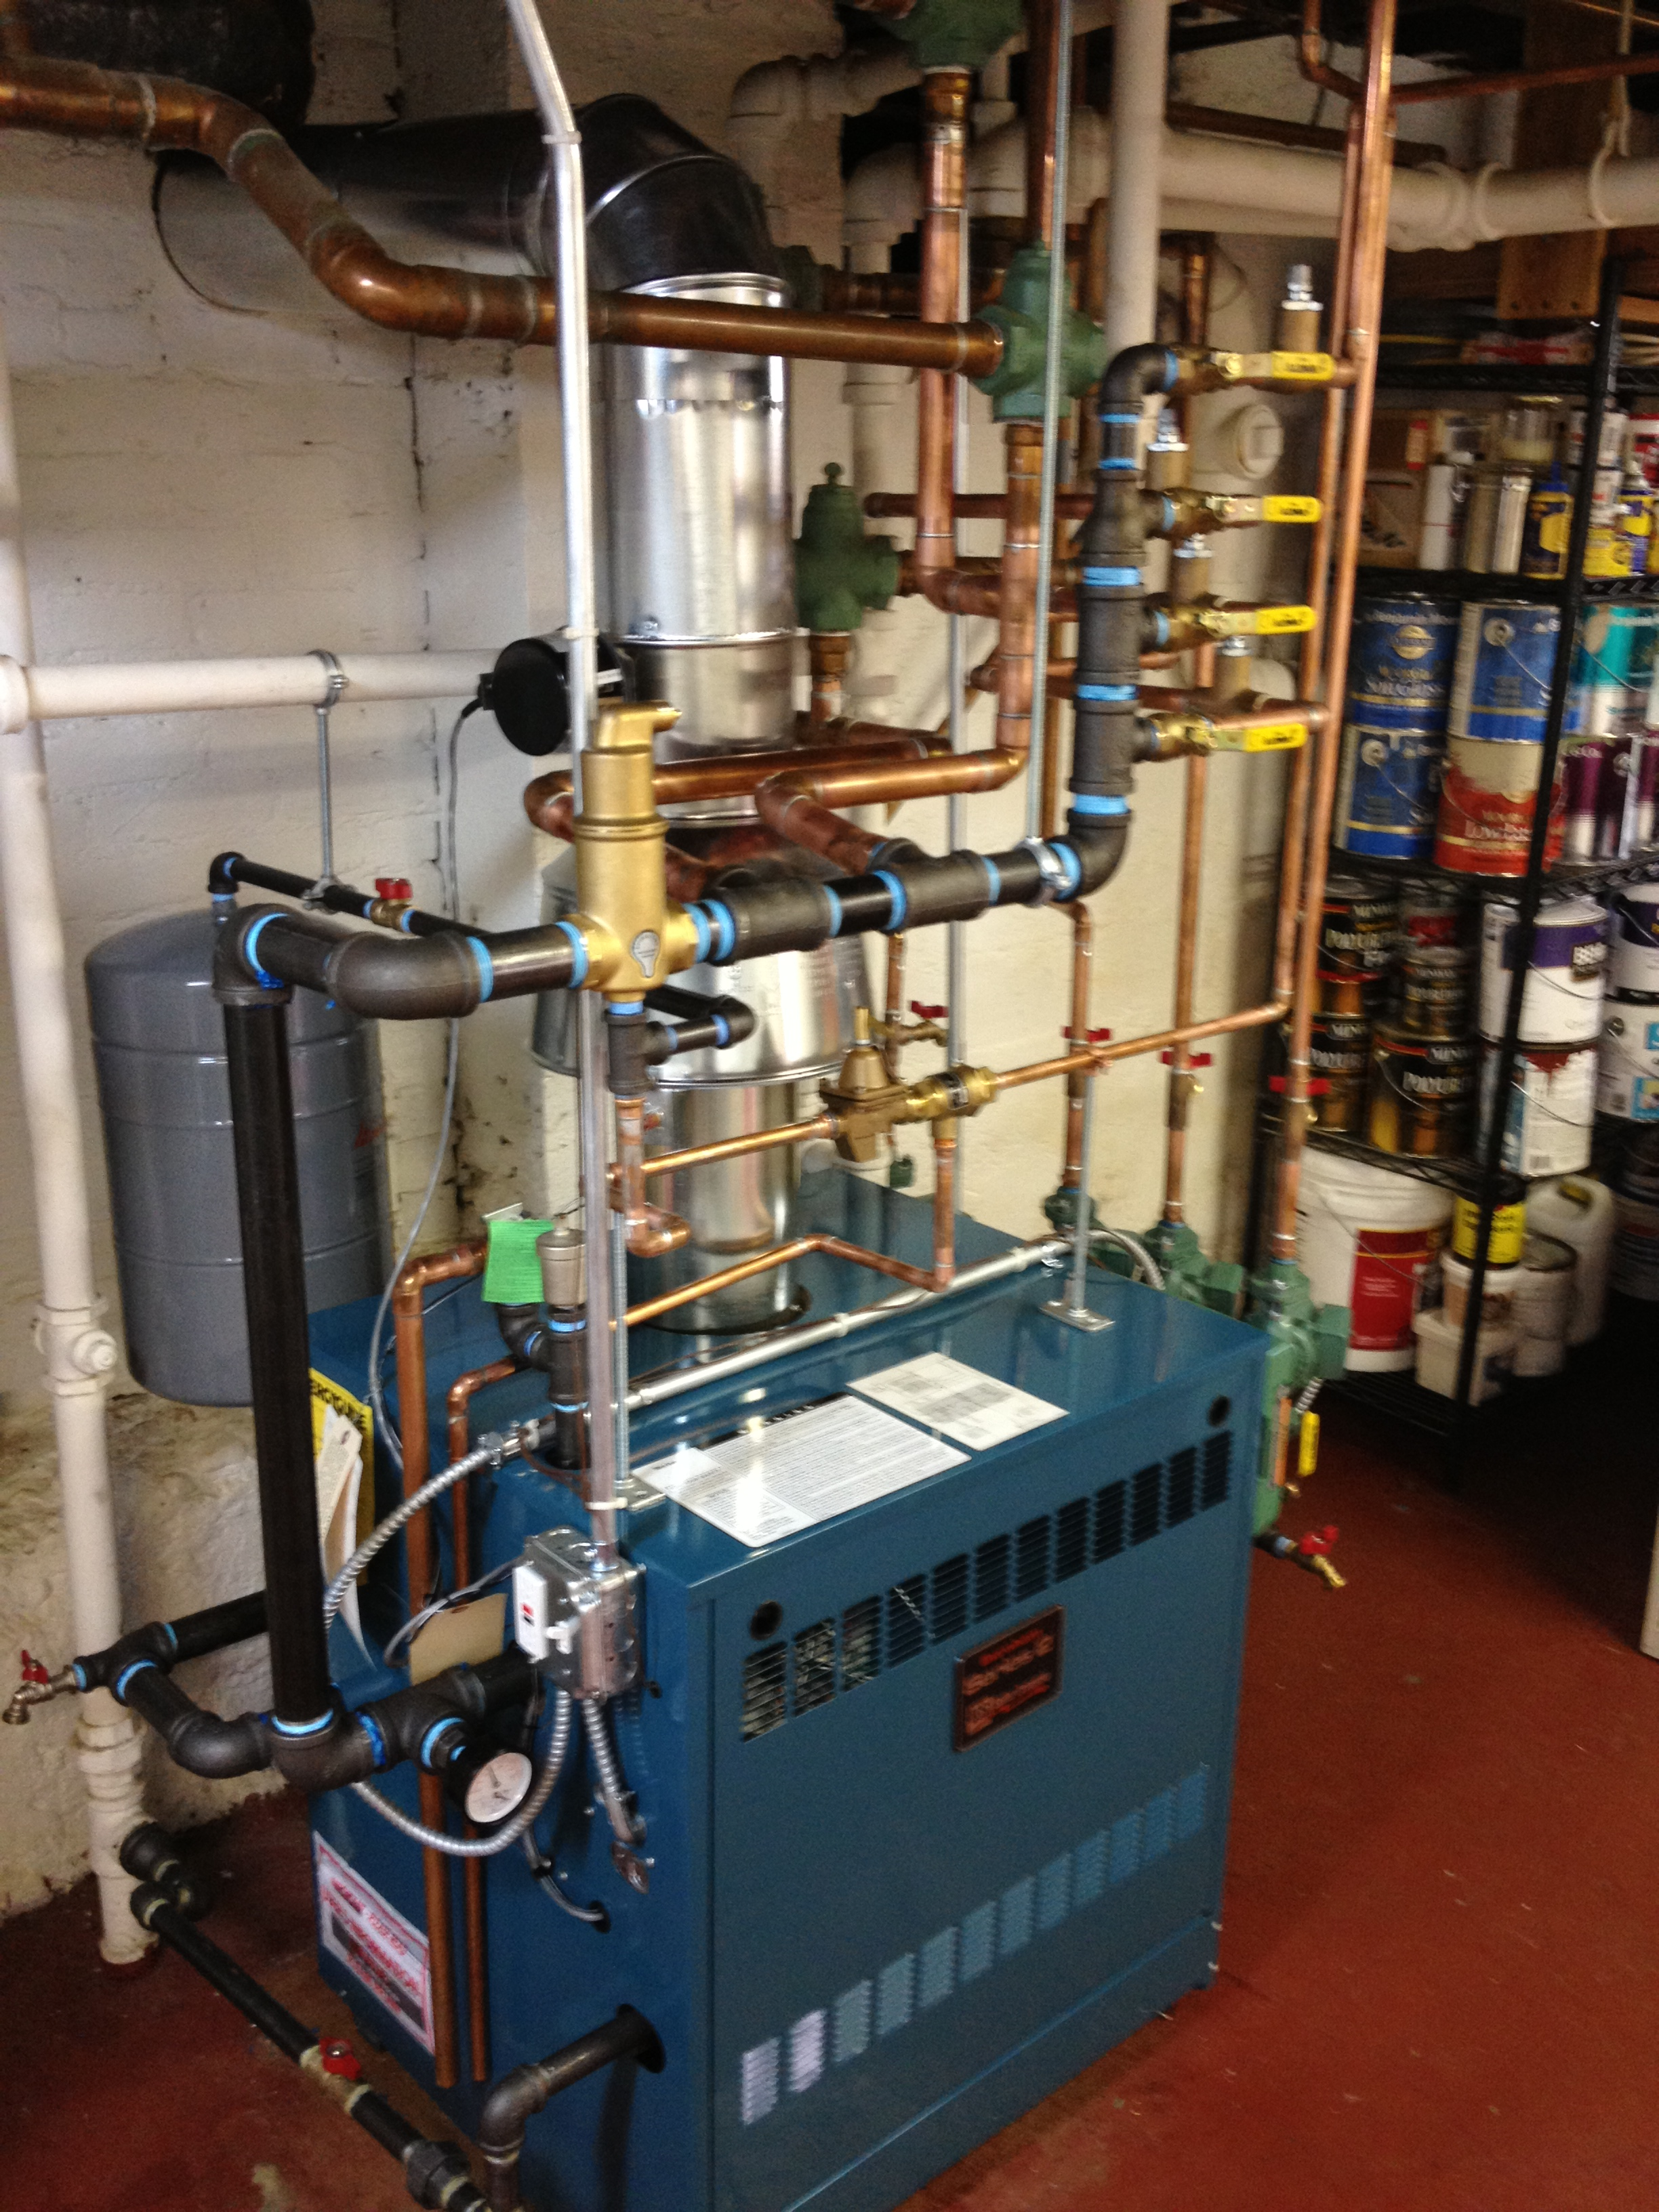 New Boiler Installation - Baker-Elman Plumbing Co.